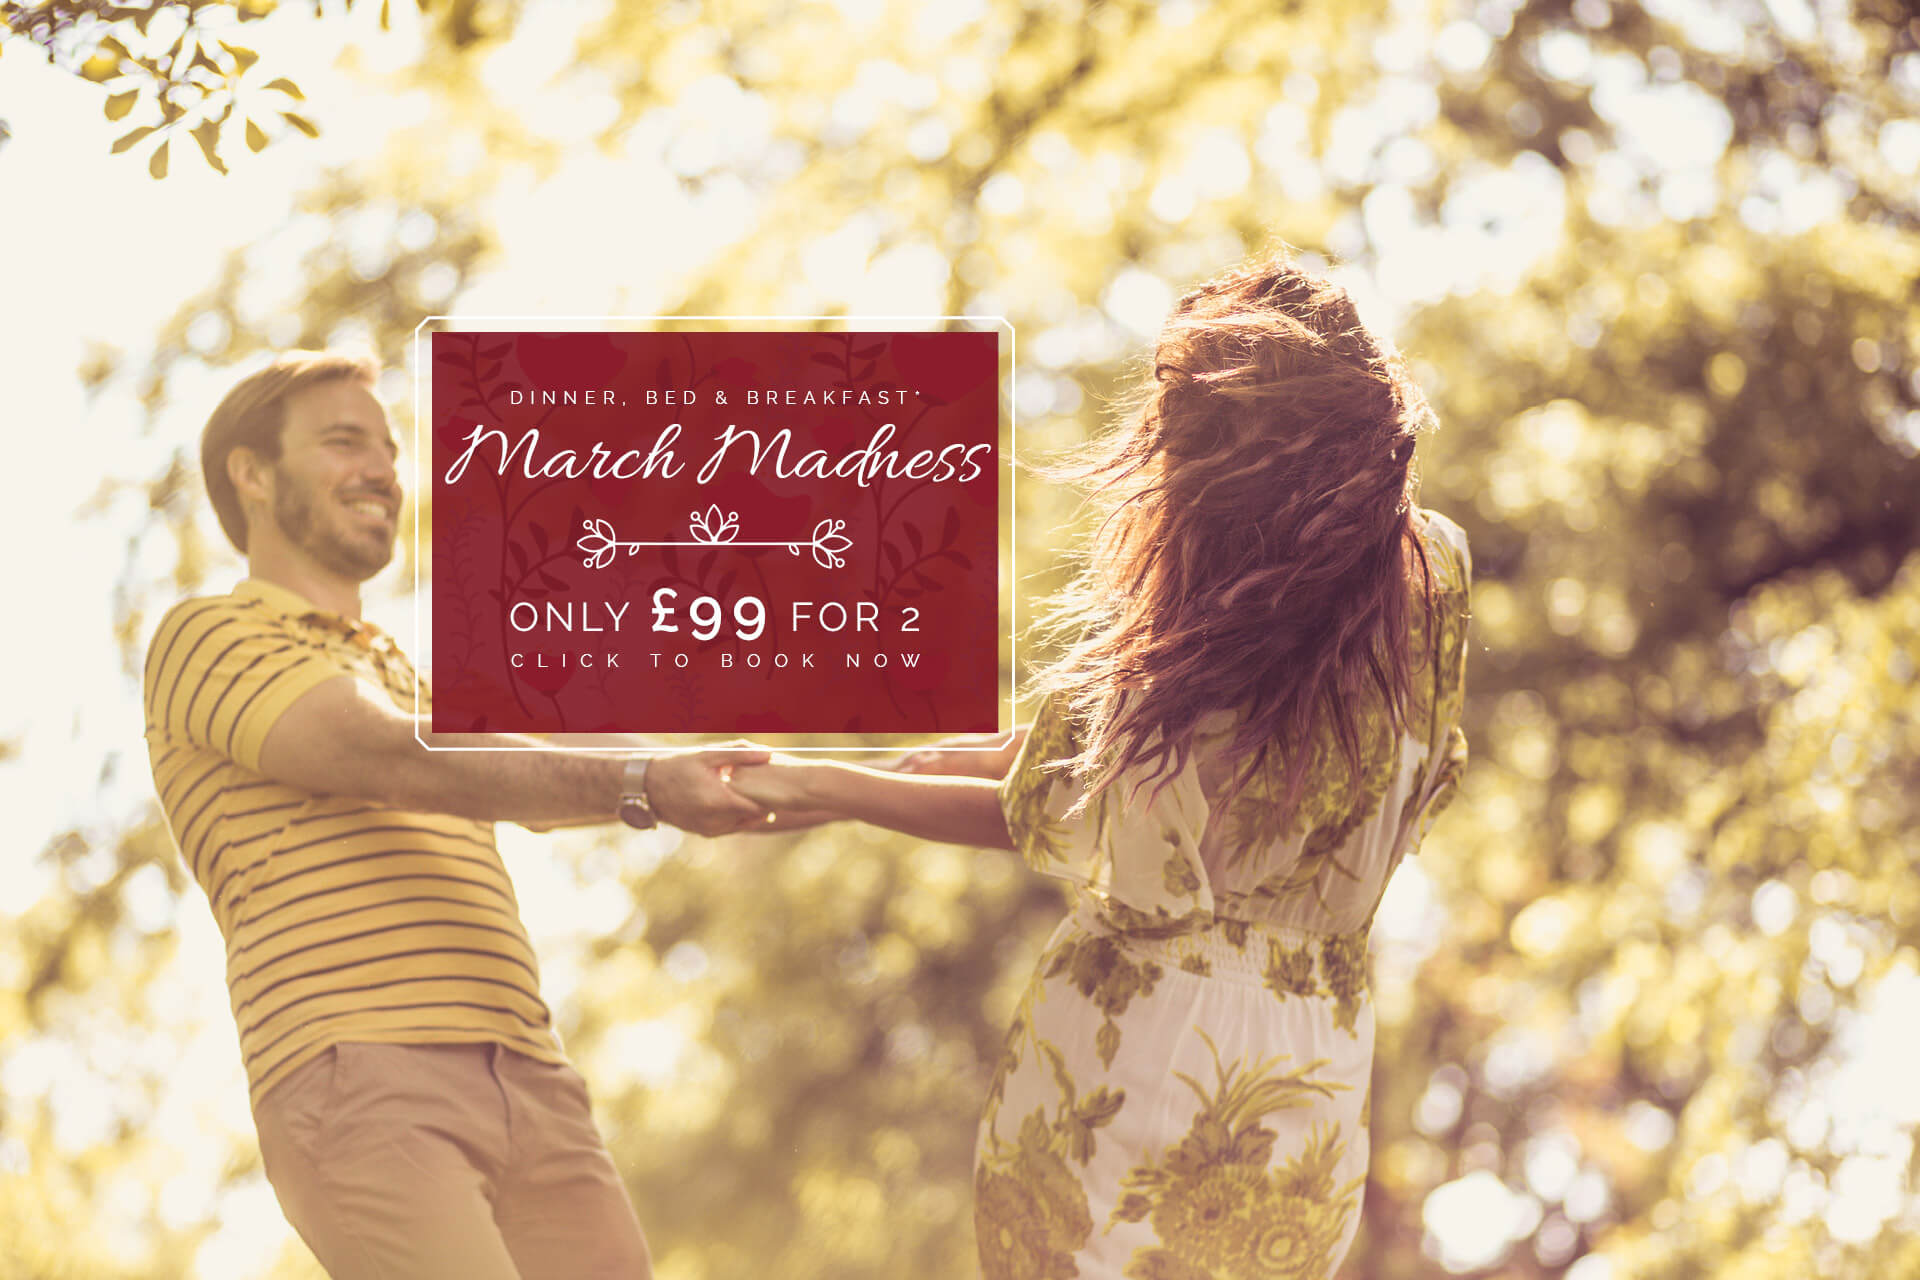 March Madness £99